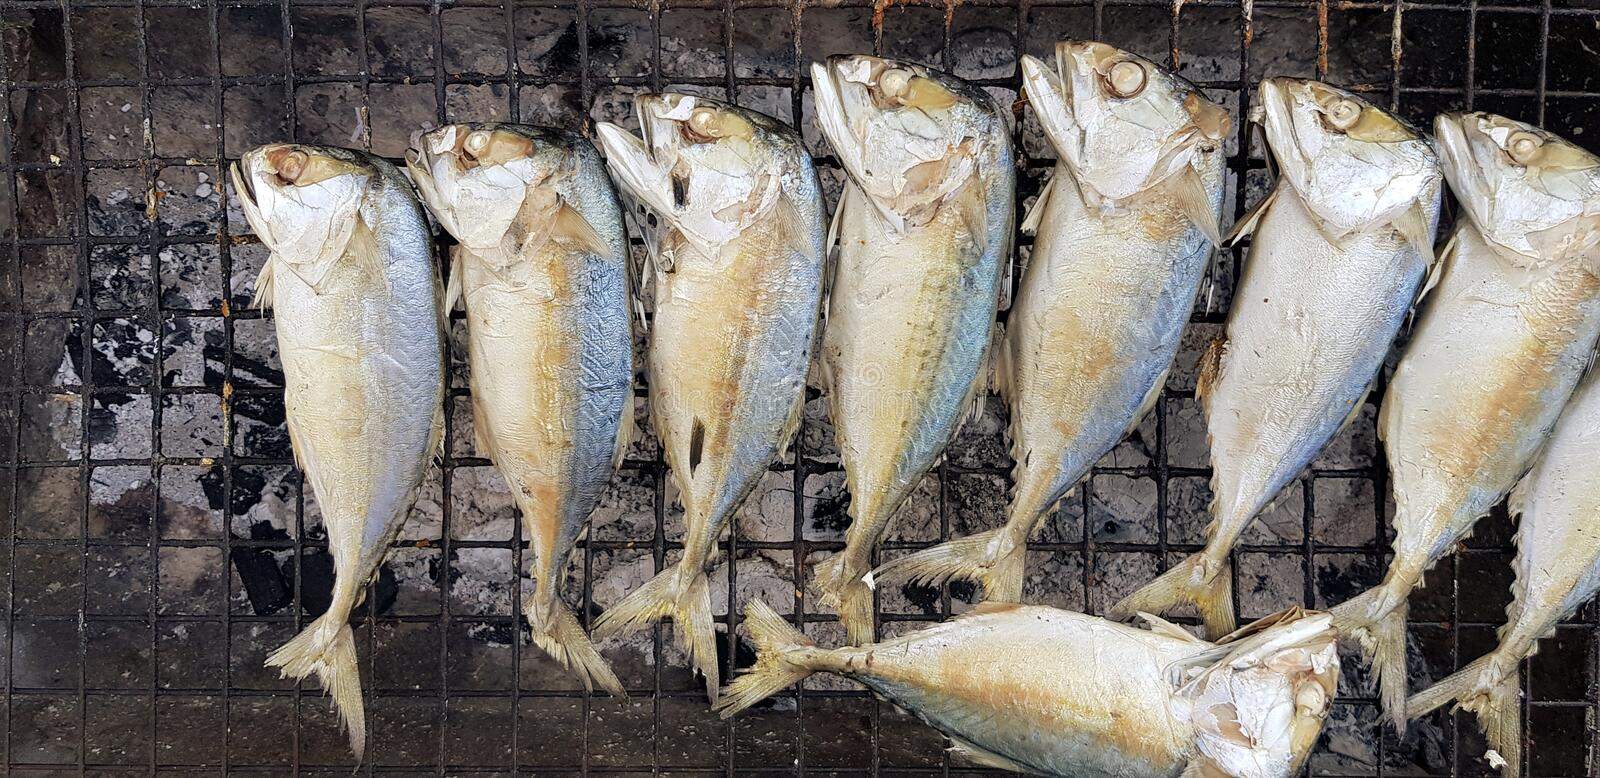 Many fresh mackerel grilled on net with charcoal stove at local street food market. stock images